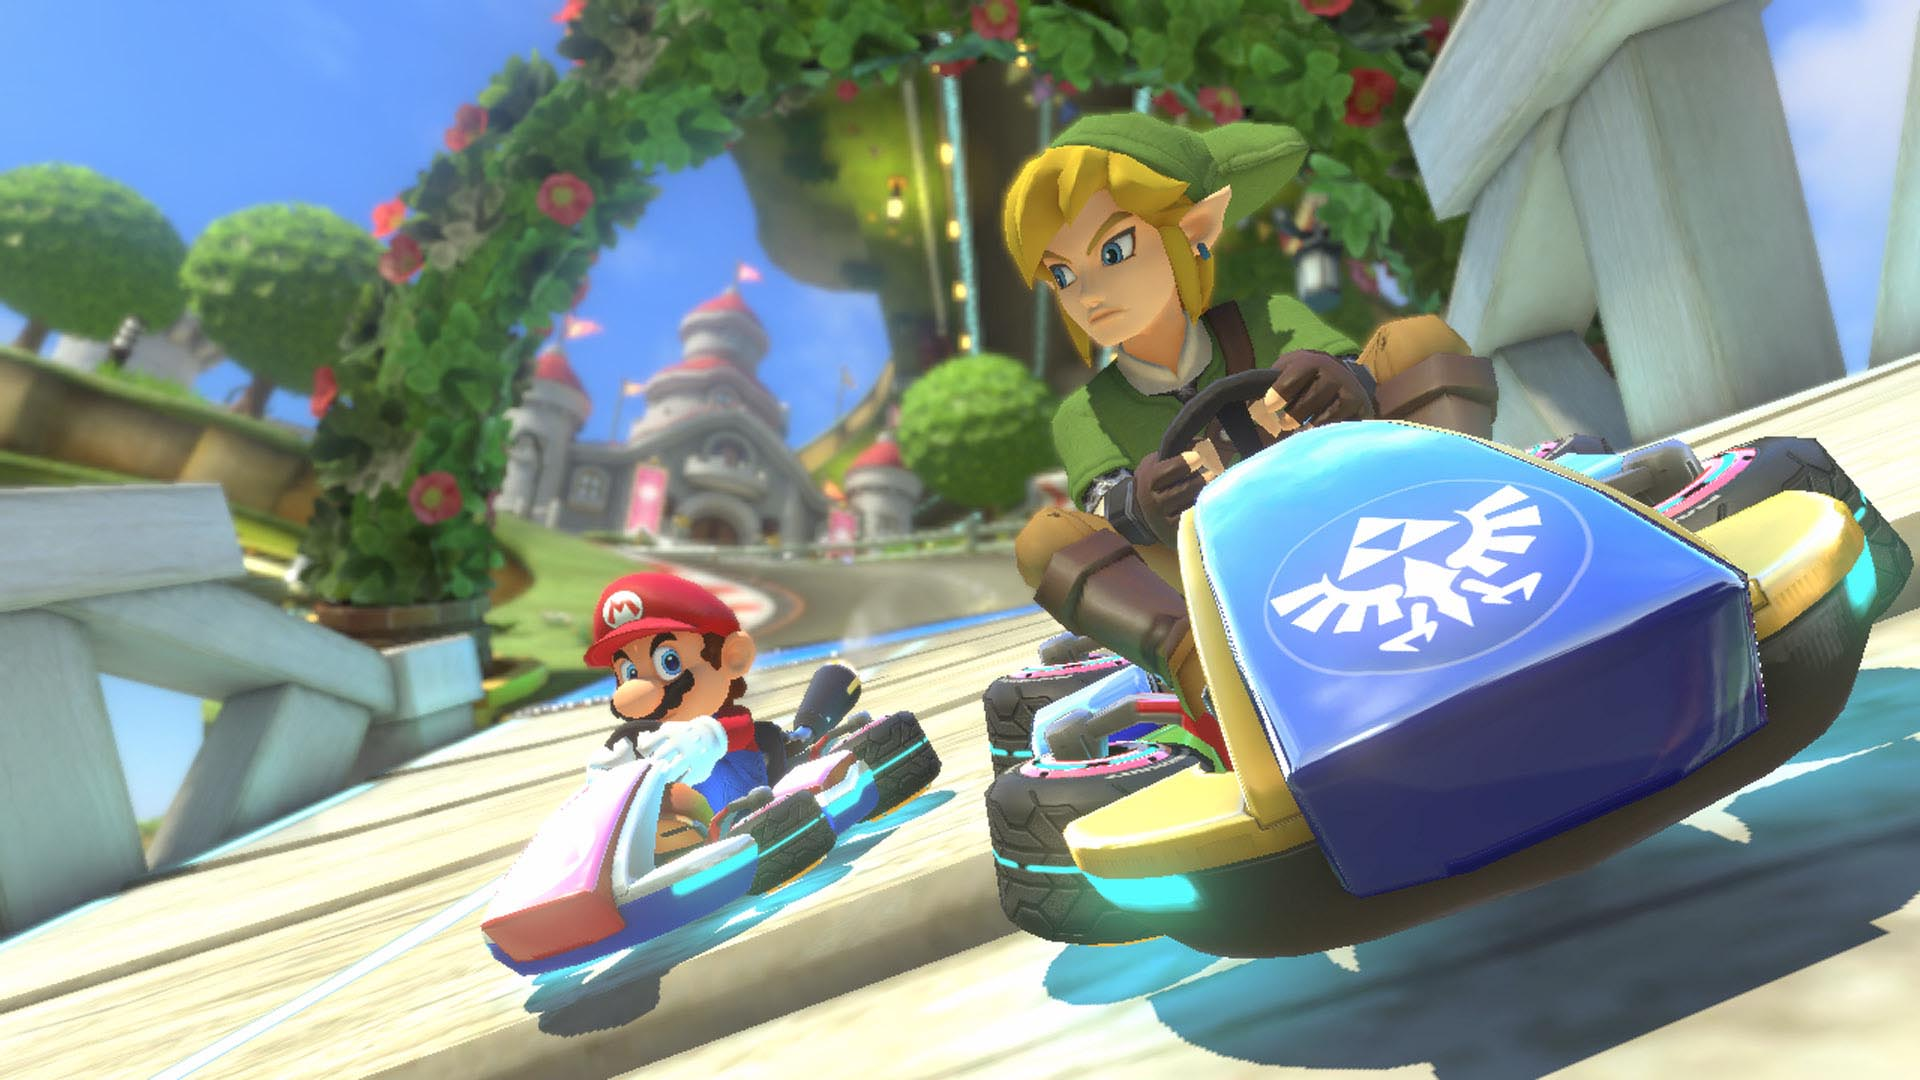 <i>Mario Kart</i>. Need we say more? Following its launch in May 2014, there have been two DLC packs released for the latest in the juggernaut franchise. Nintendo is producing new content through to 2016, but hasn't yet detailed what that content will be. | <b>For:</b> Wii U